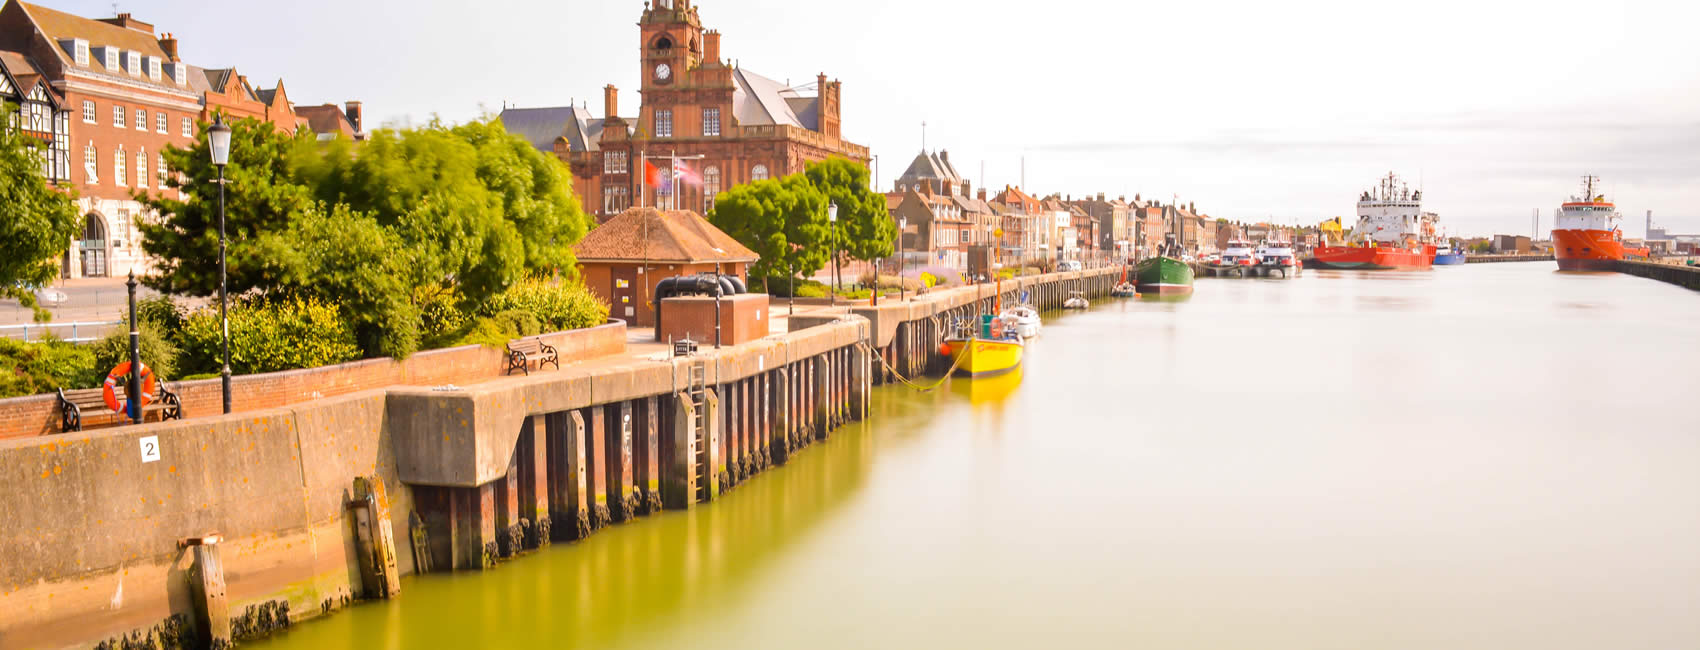 the harbour of Great Yarmouth in Norfolk